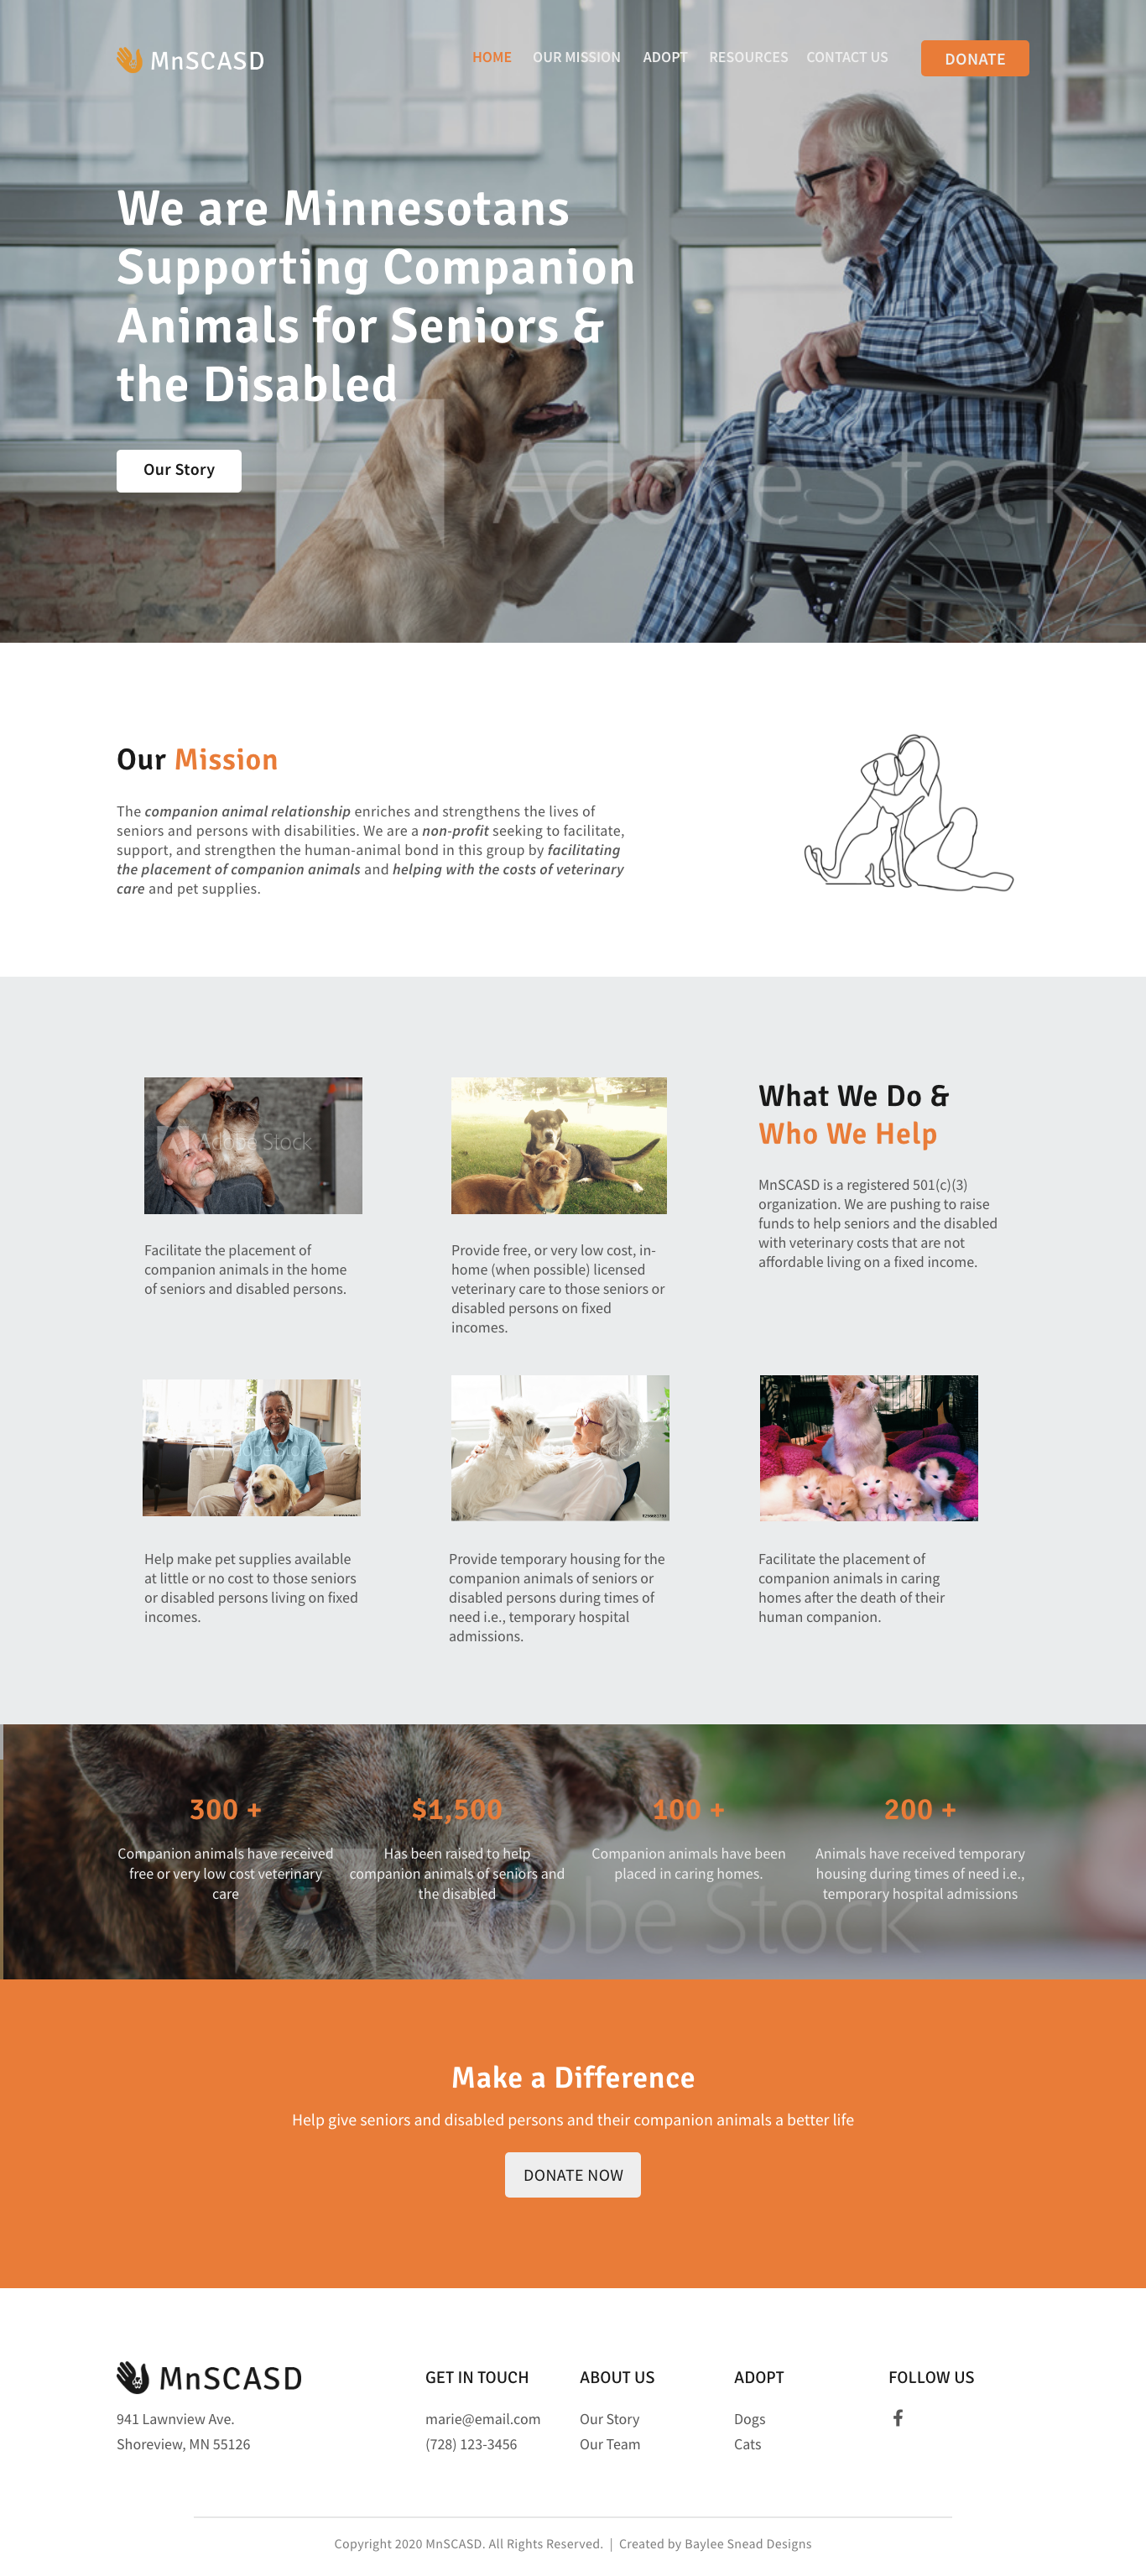 Squarespace Website Wireframe For A Nonprofit In 2020 Nonprofit Website Design Squarespace Website Design Squarespace Website